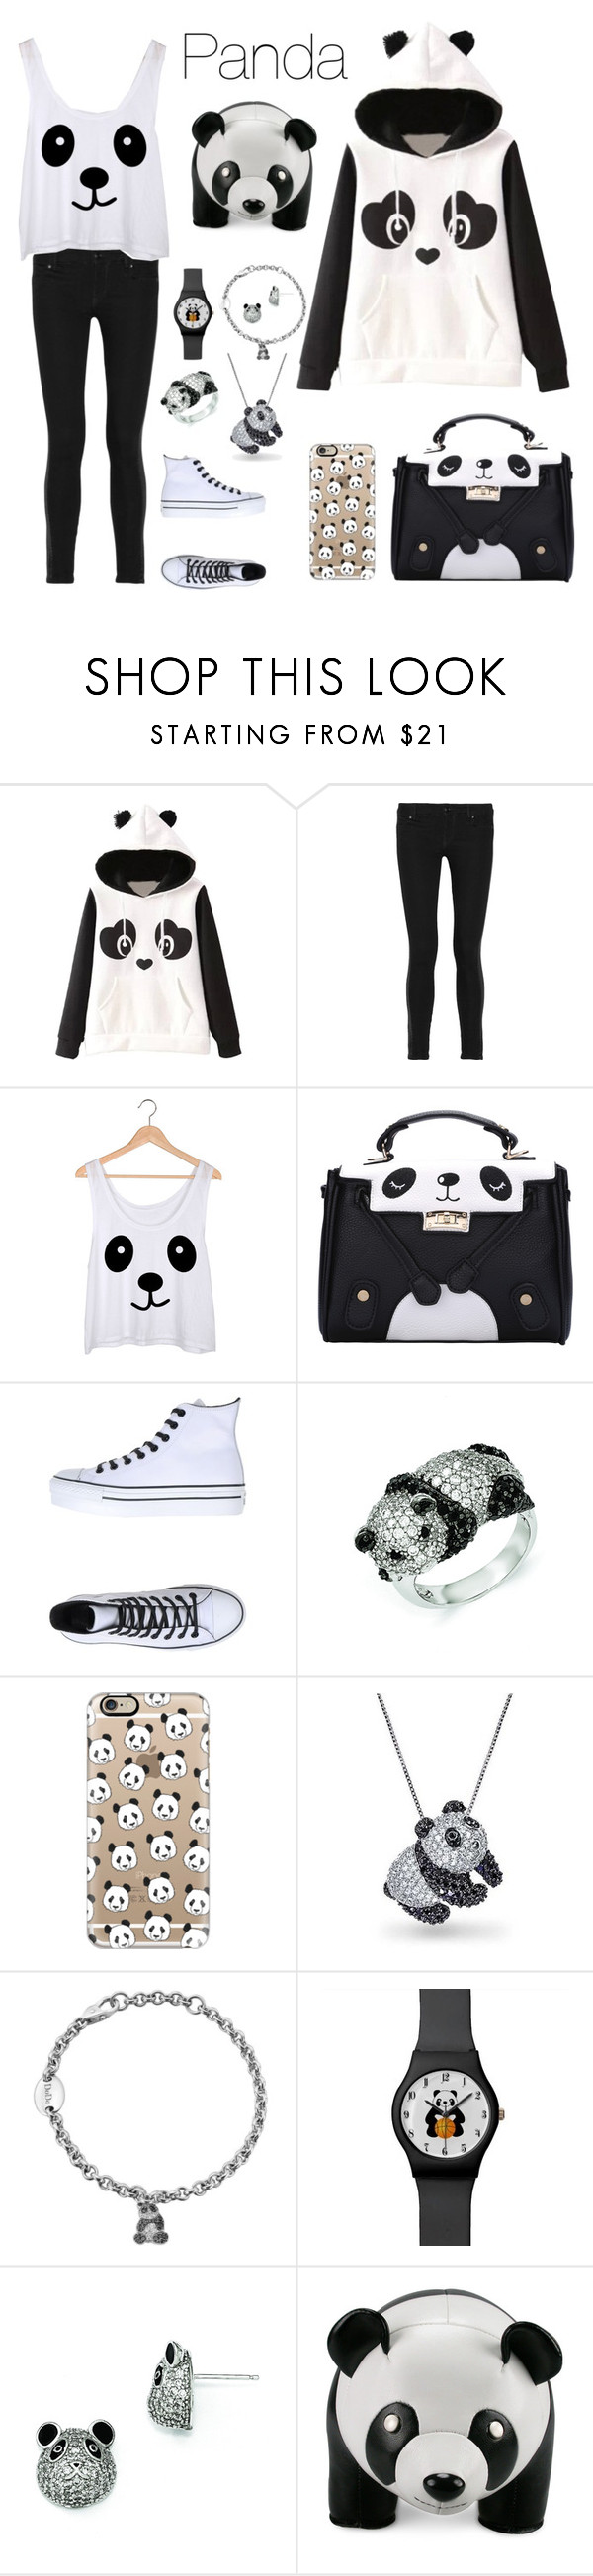 """Panda ♣️"" by natalialovesnutella12 ❤ liked on Polyvore featuring Garcia, Pierre…"